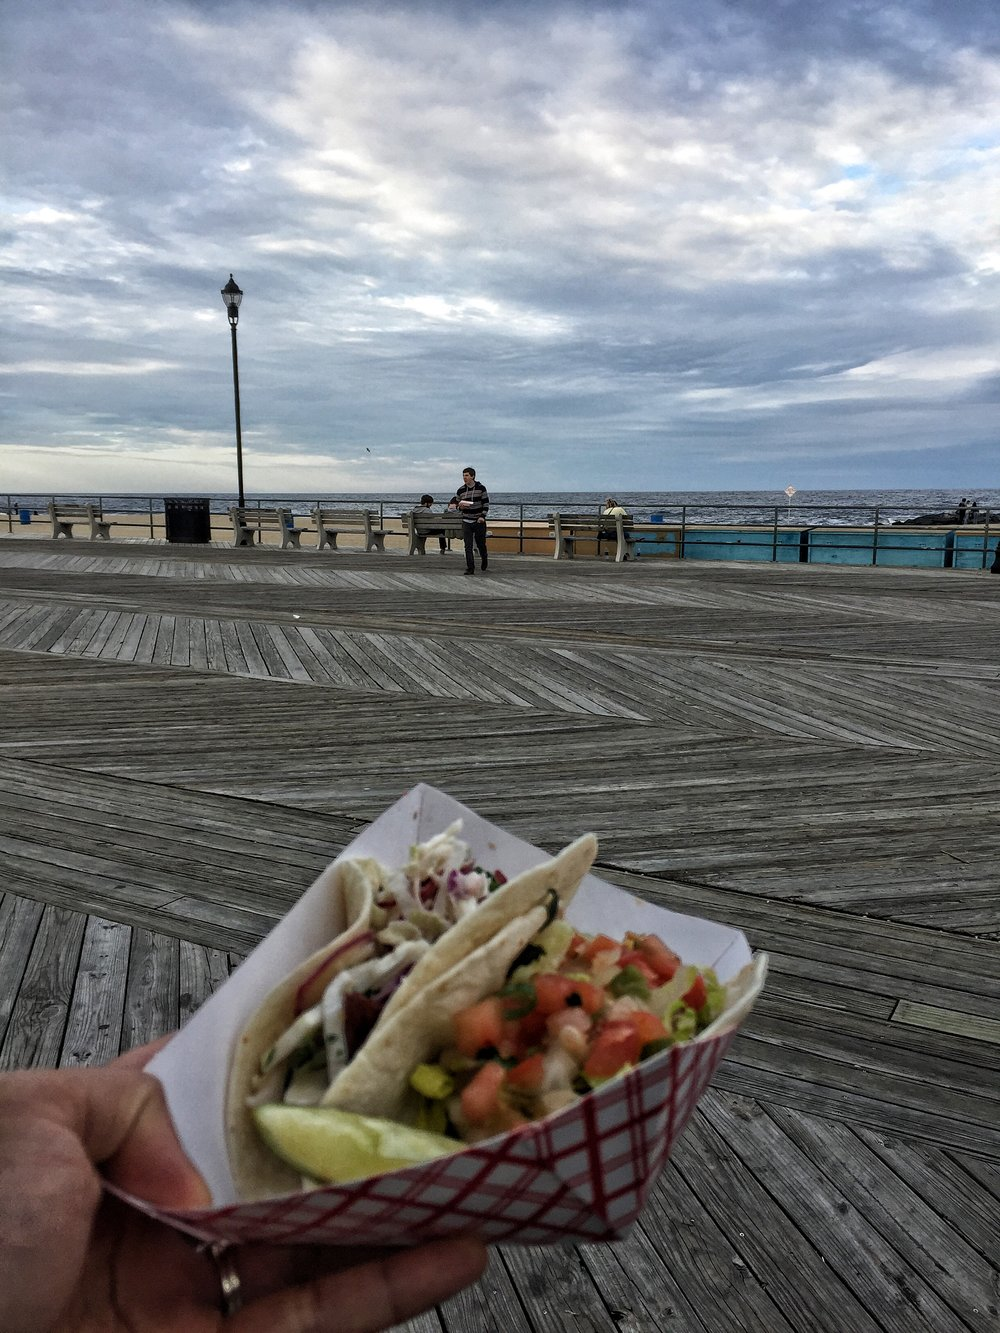 Beer makes your hungry. Take a taco break in Asbury Park.